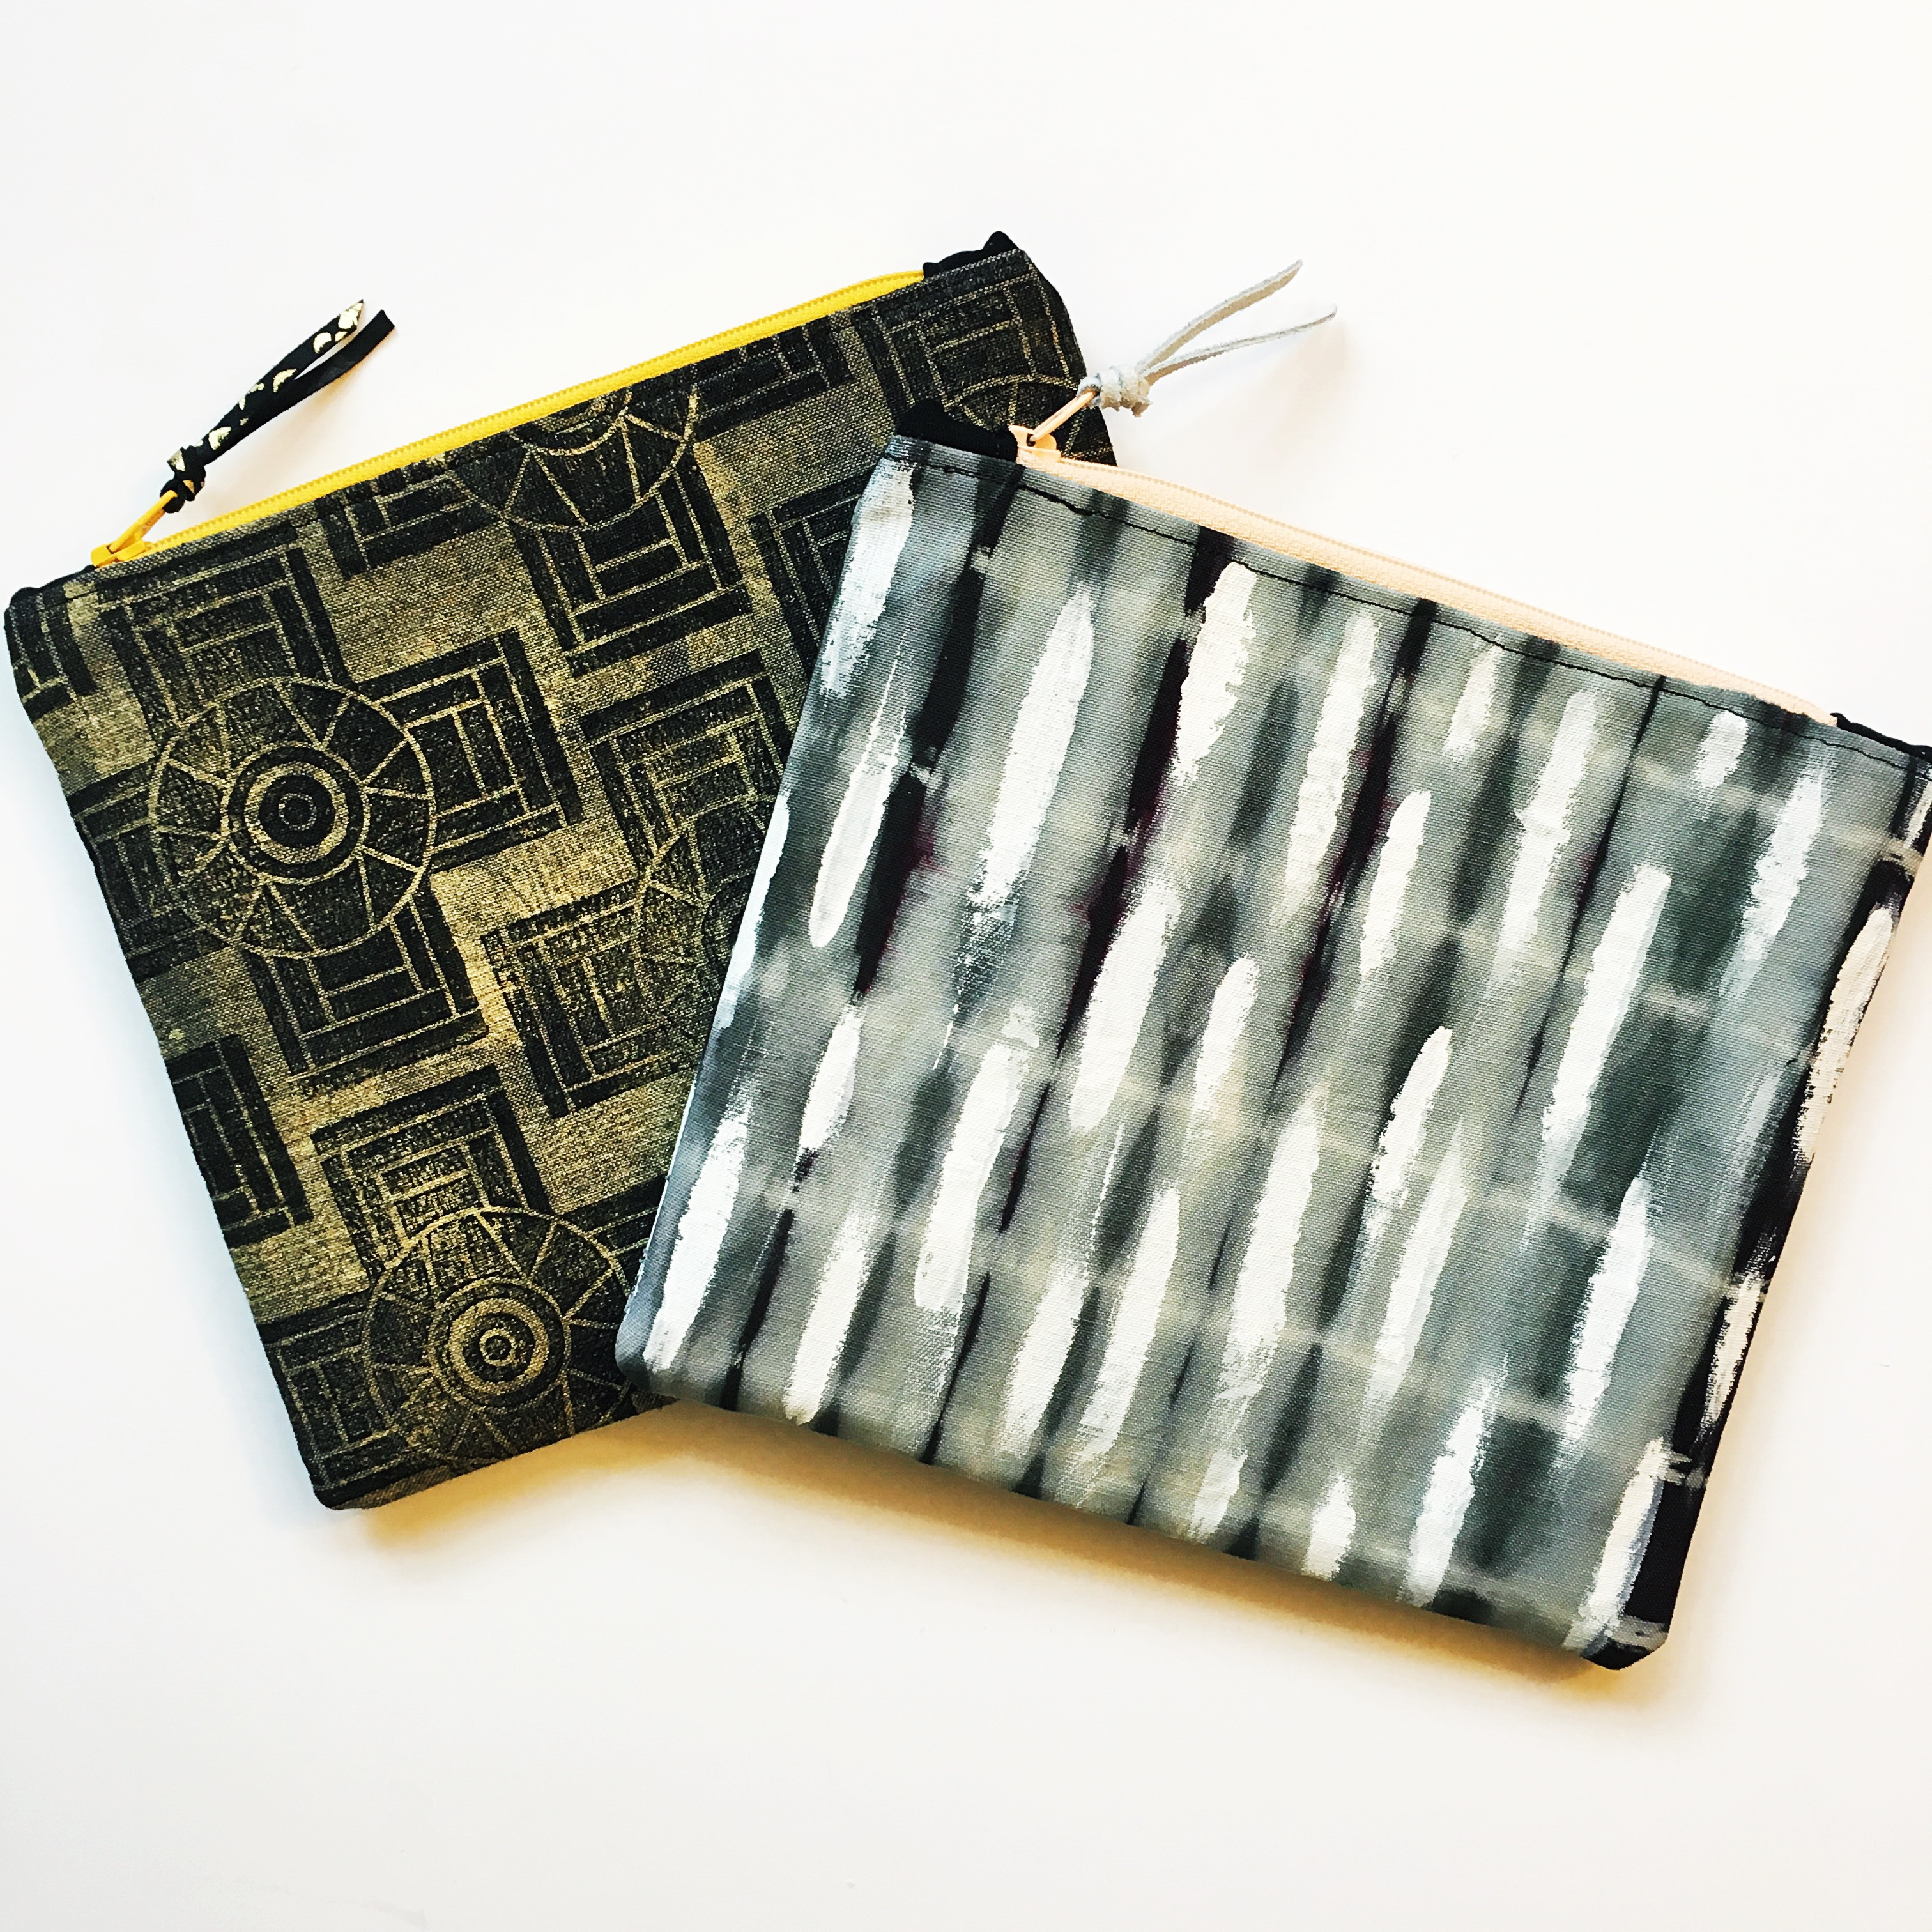 Hand painted and printed clutches